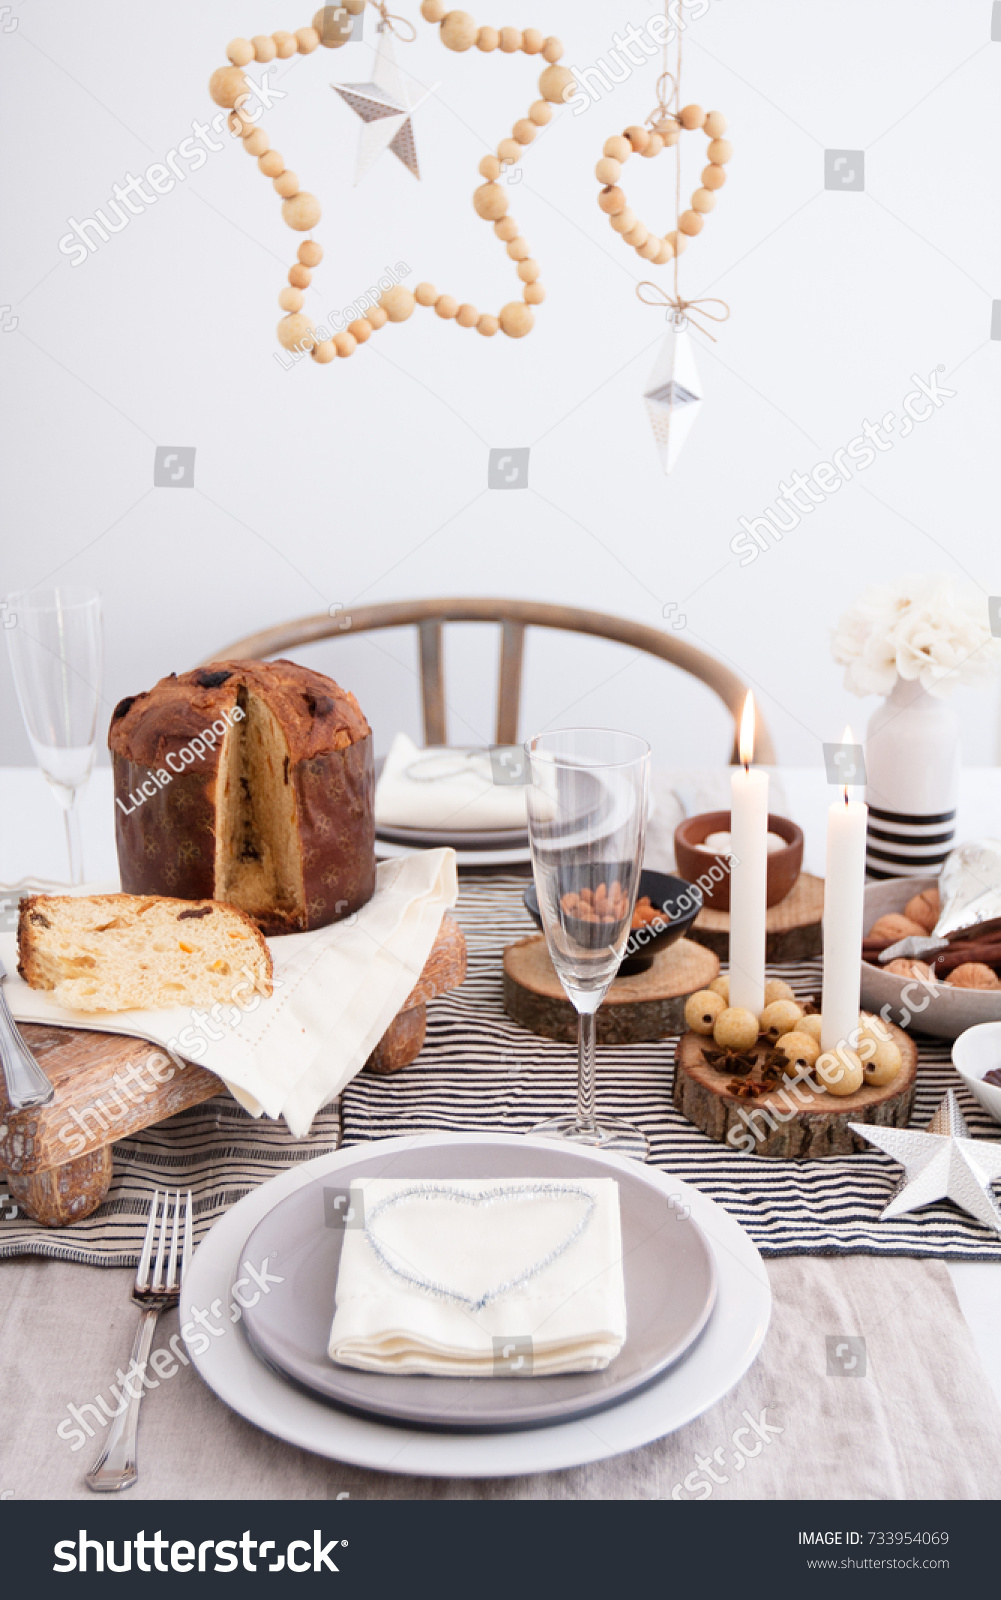 Christmas Dinner Table DIY Scandinavian Rustic Stock Photo (Edit Now ...